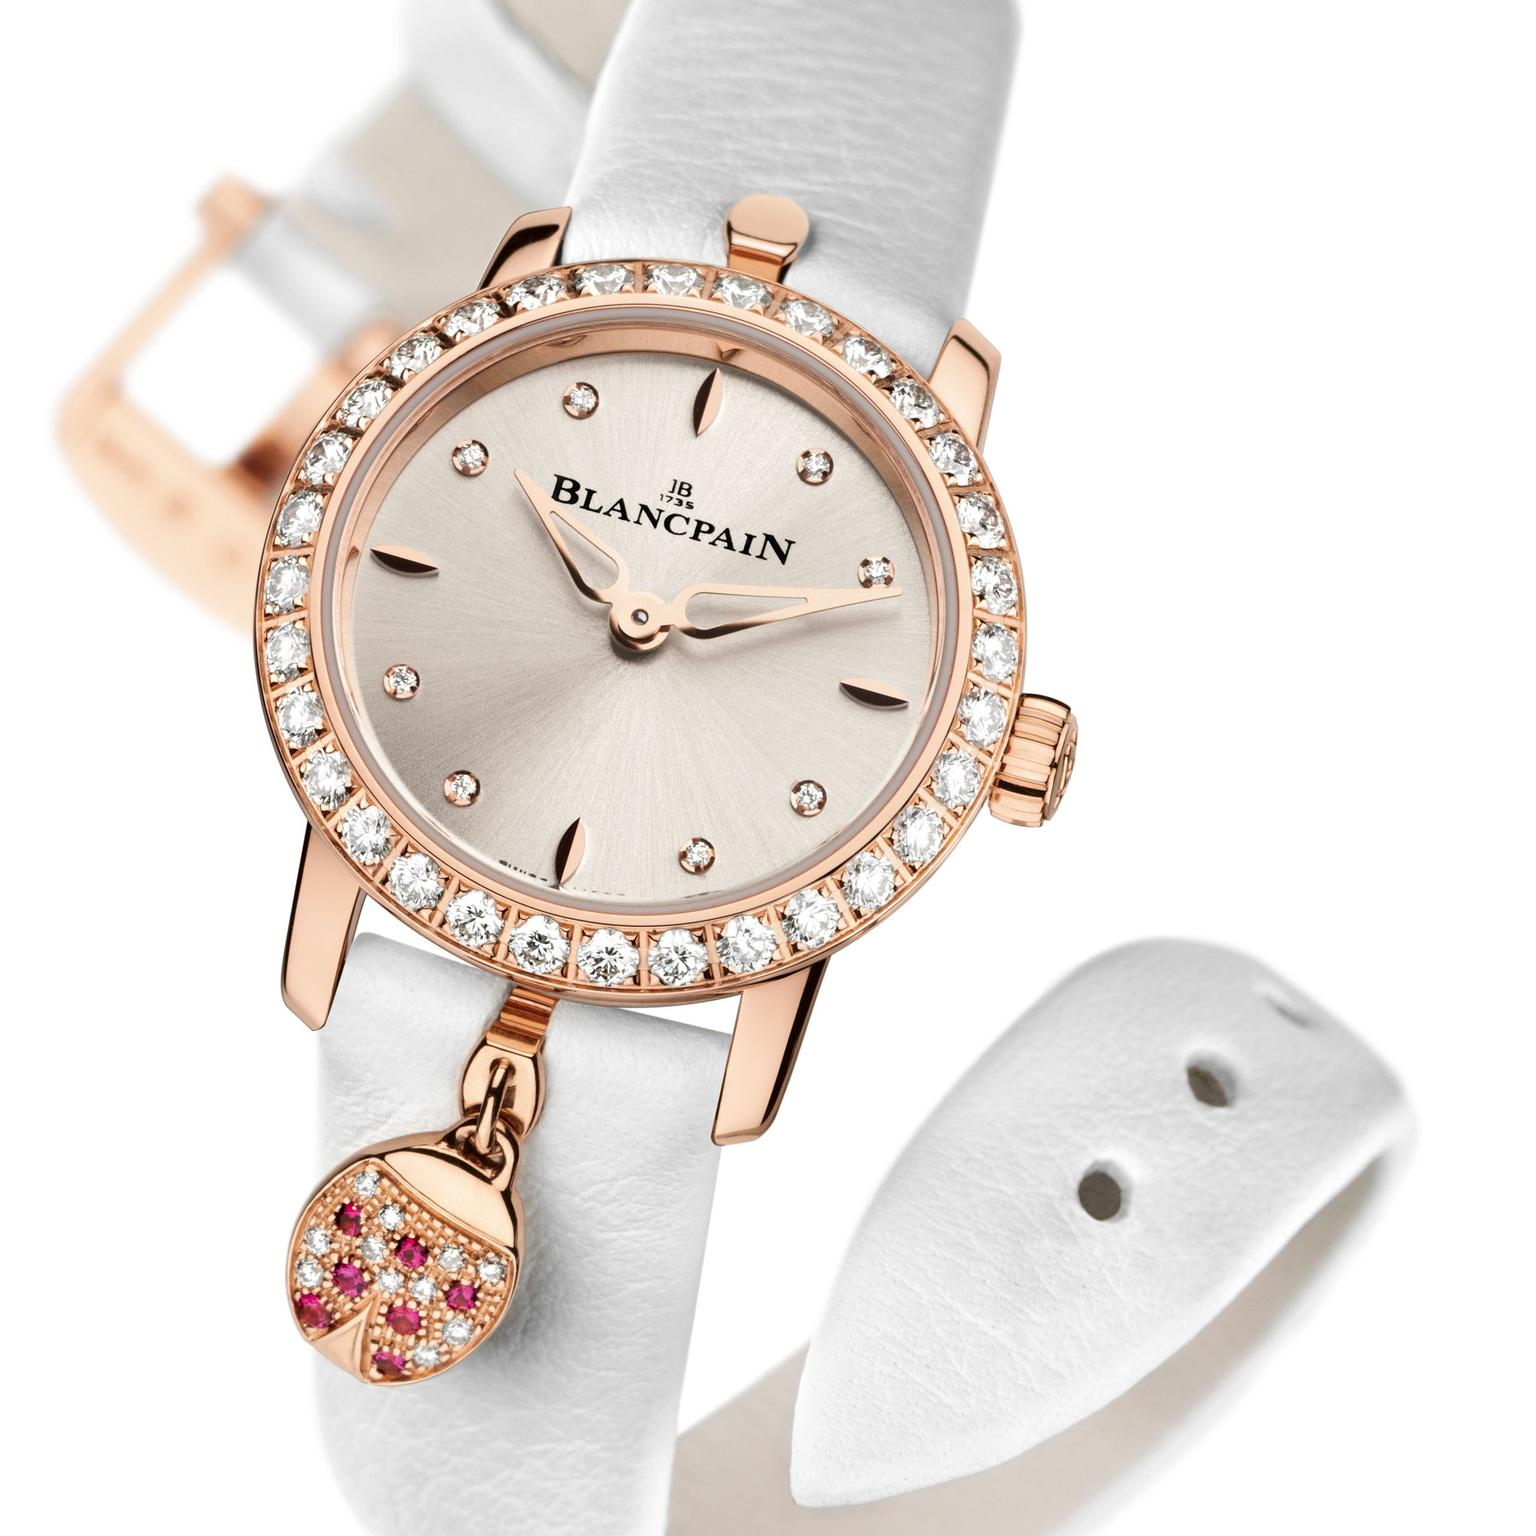 Blancpain Ladybird watch with diamonds